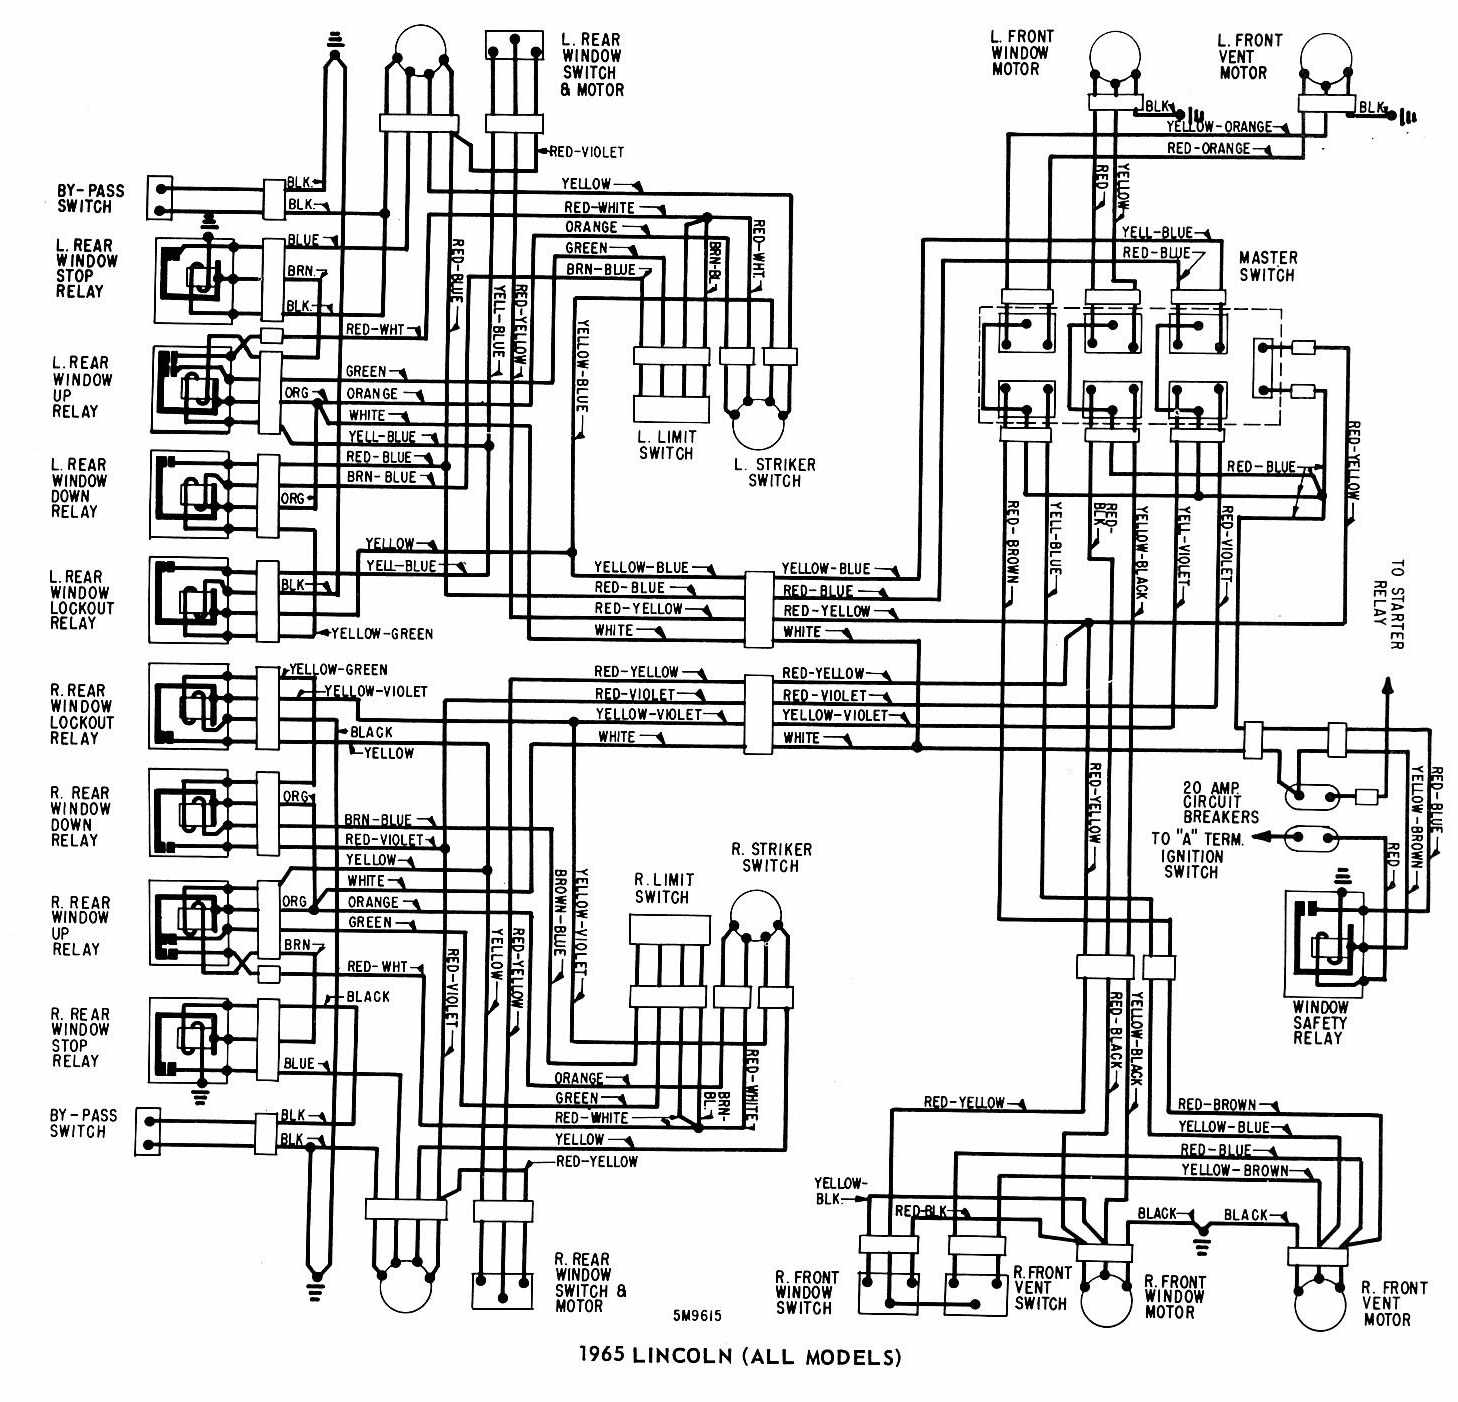 1962 lincoln wiring diagram free wiring diagram for you u2022 eurodrive wiring diagrams 1960 lincoln wiring diagram [ 1458 x 1402 Pixel ]